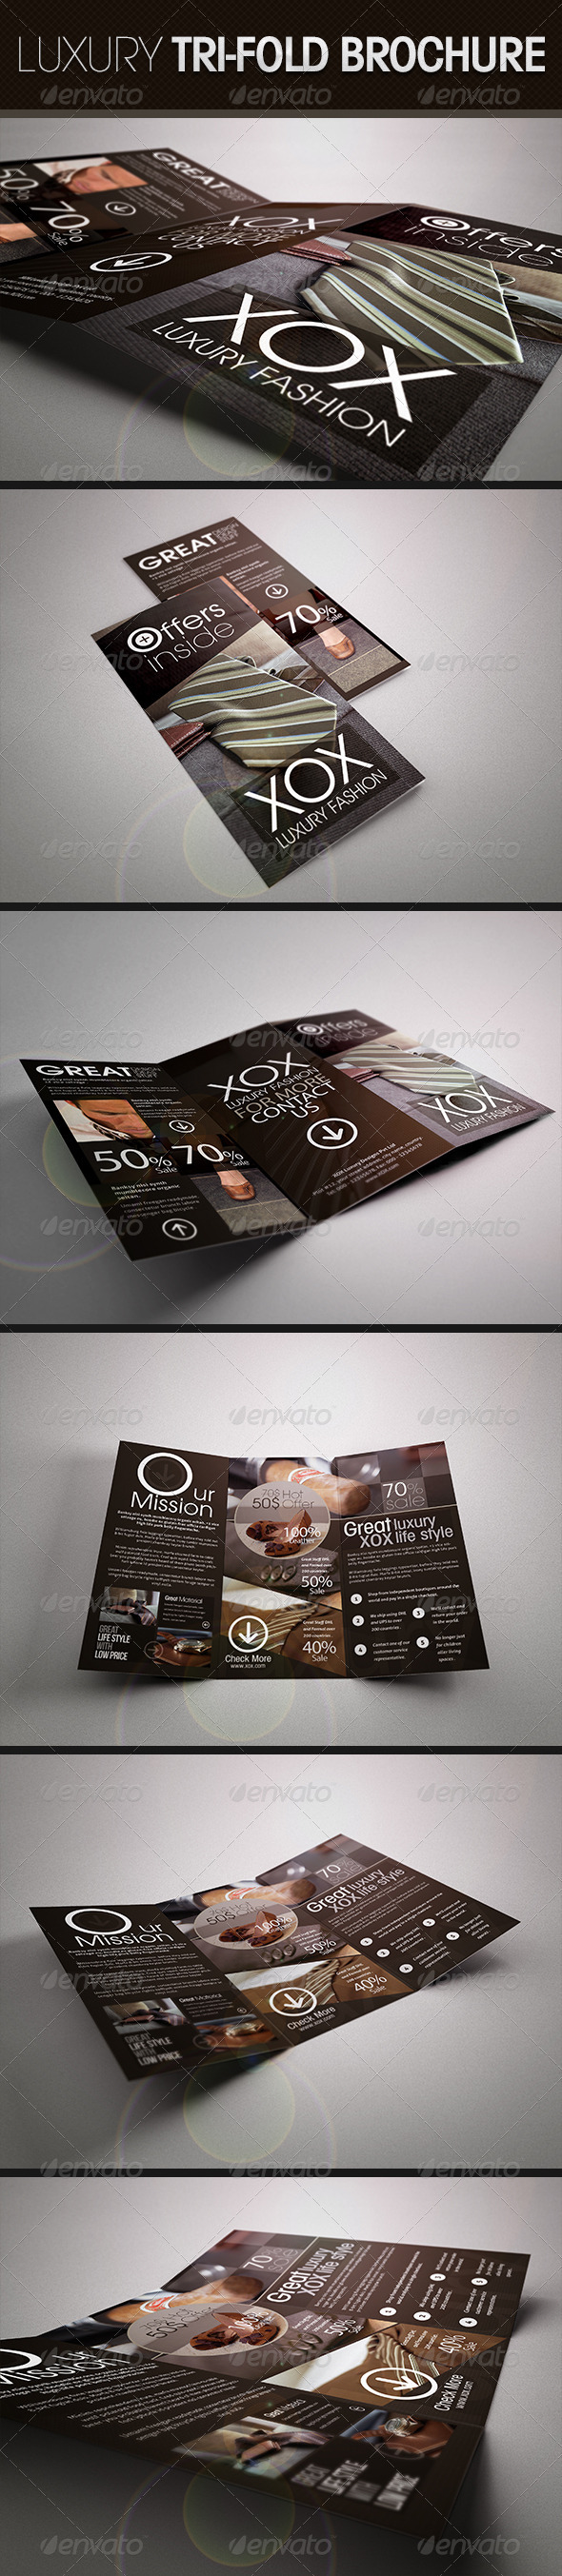 Luxury Trifold Brochure - Corporate Brochures